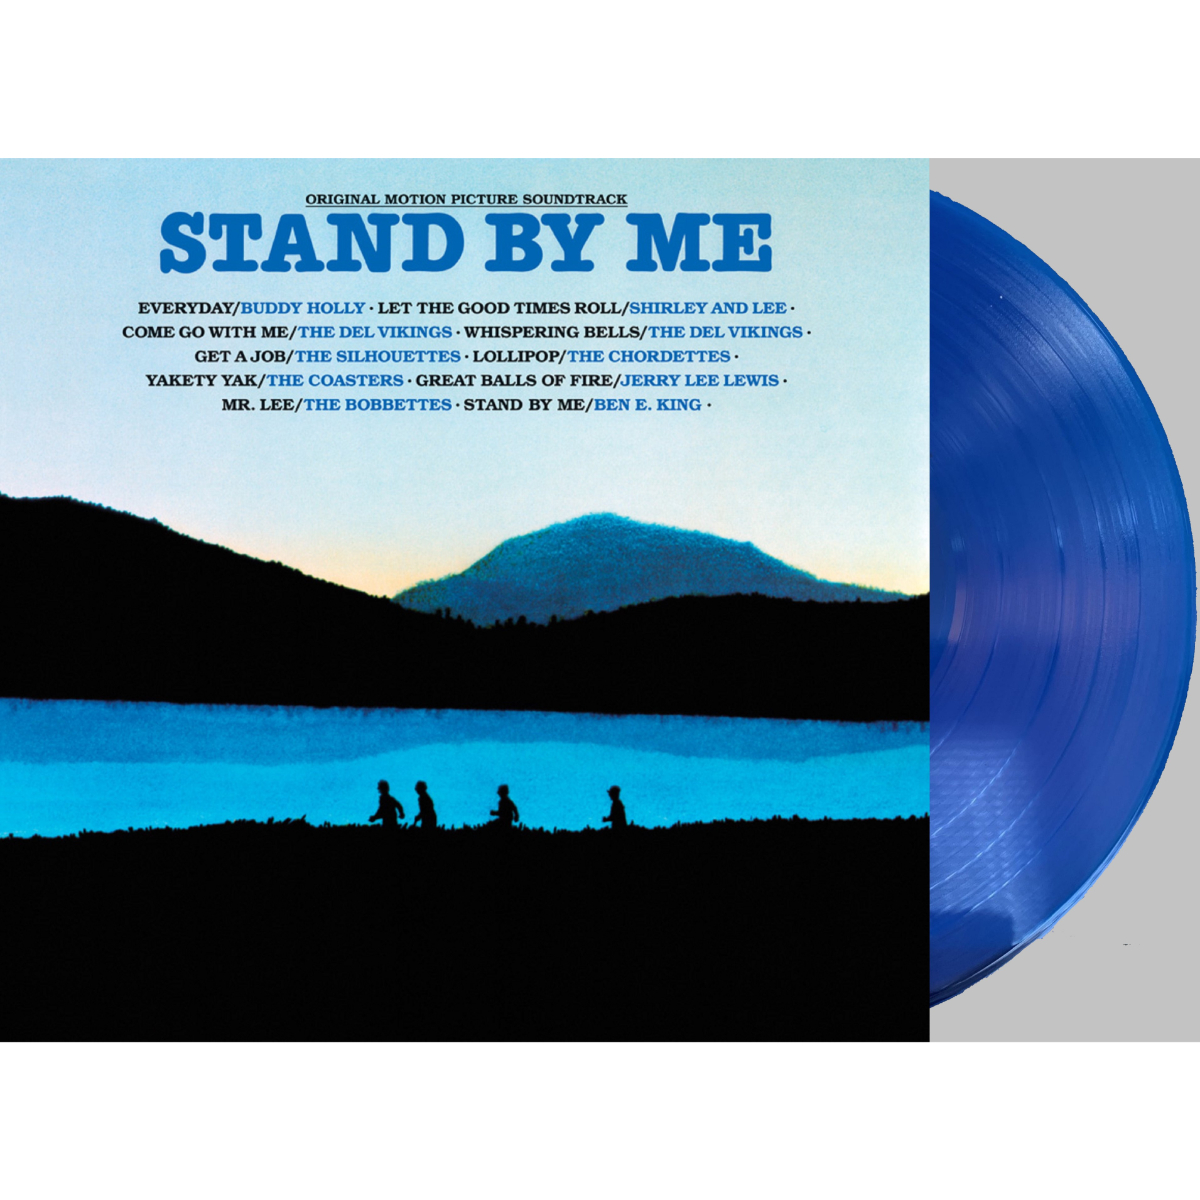 Stand By Me -Original Motion Picture Soundtrack (180 Gram Translucent Blue Audiophile Vinyl/Limited Anniversary Edition)